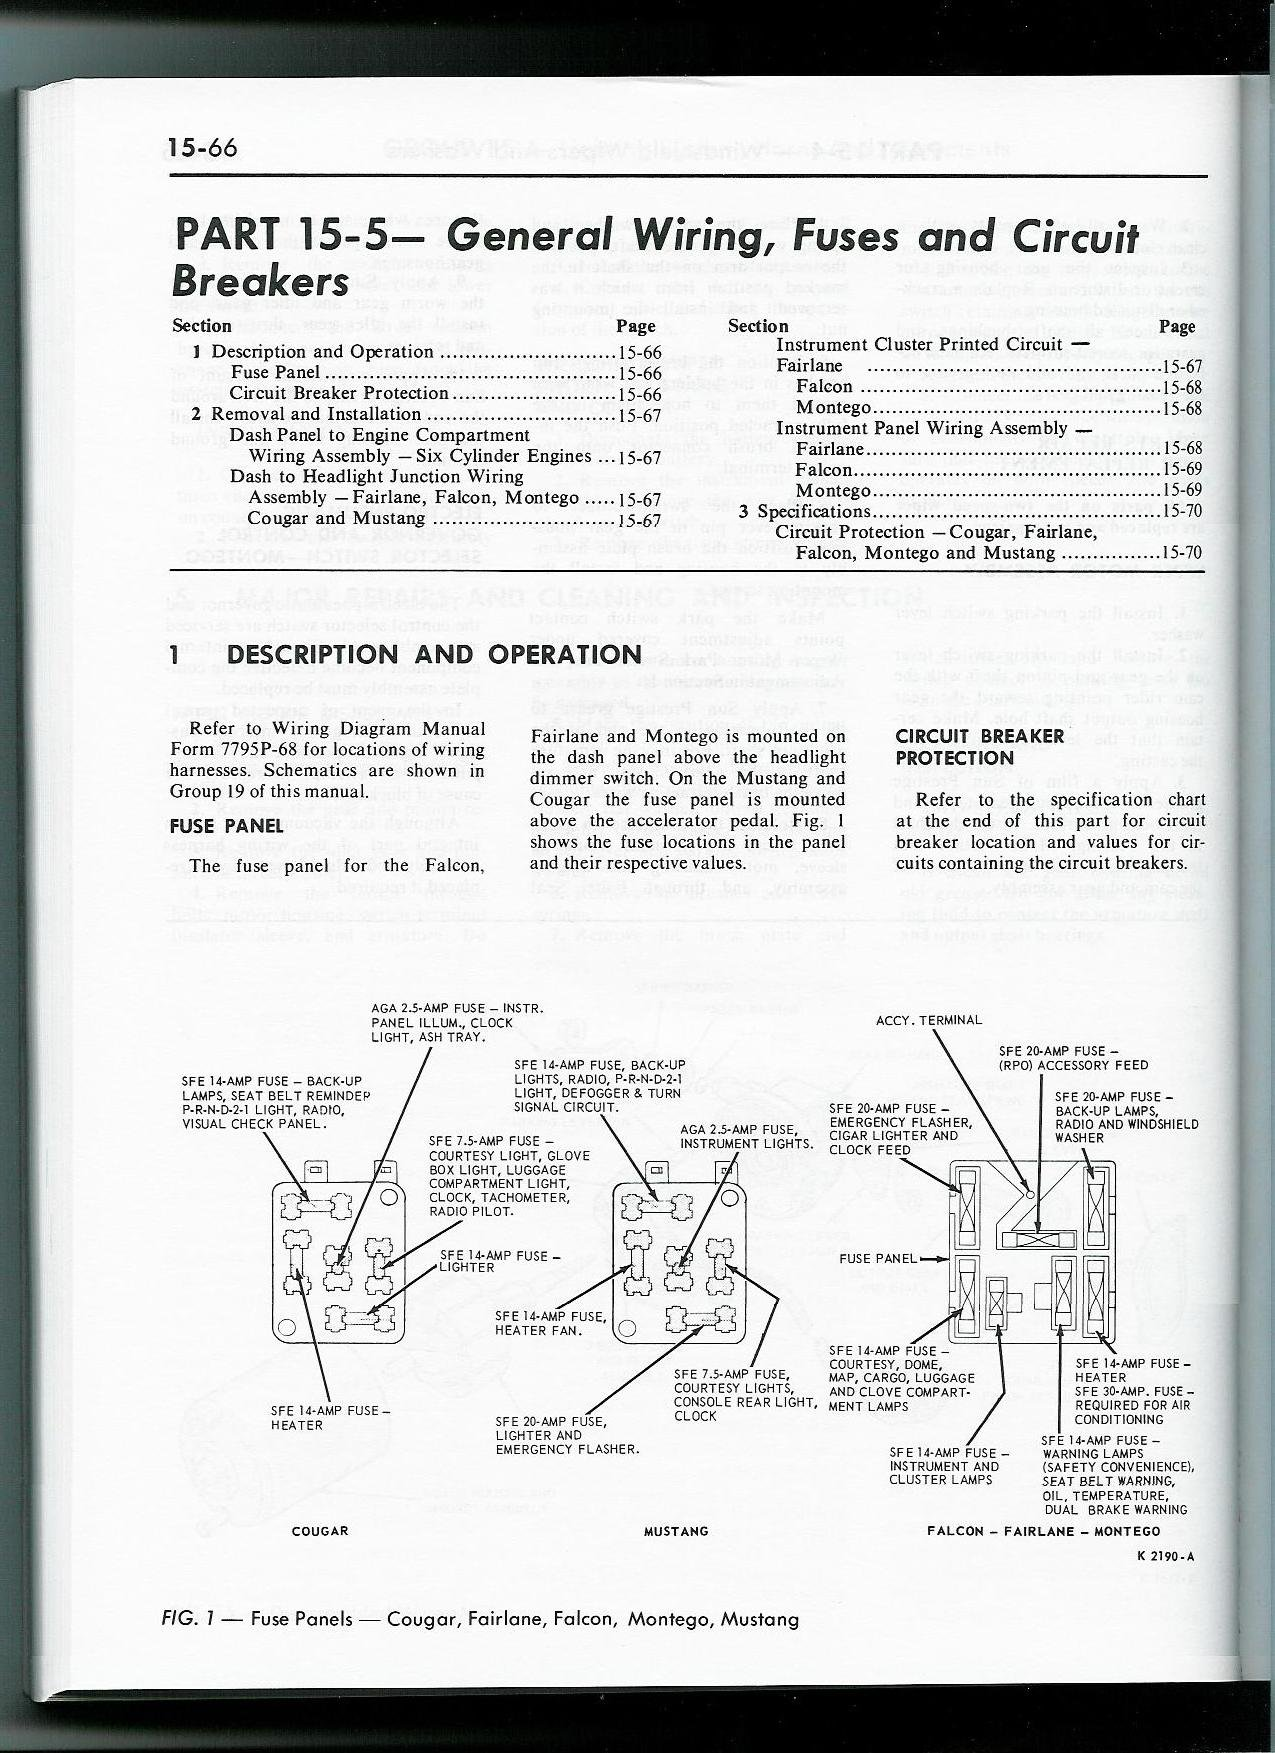 1966 mustang coupe ~ fuse block question... - ford mustang forum 66 mustang fuse diagram 66 mustang wiring diagram for dash #11